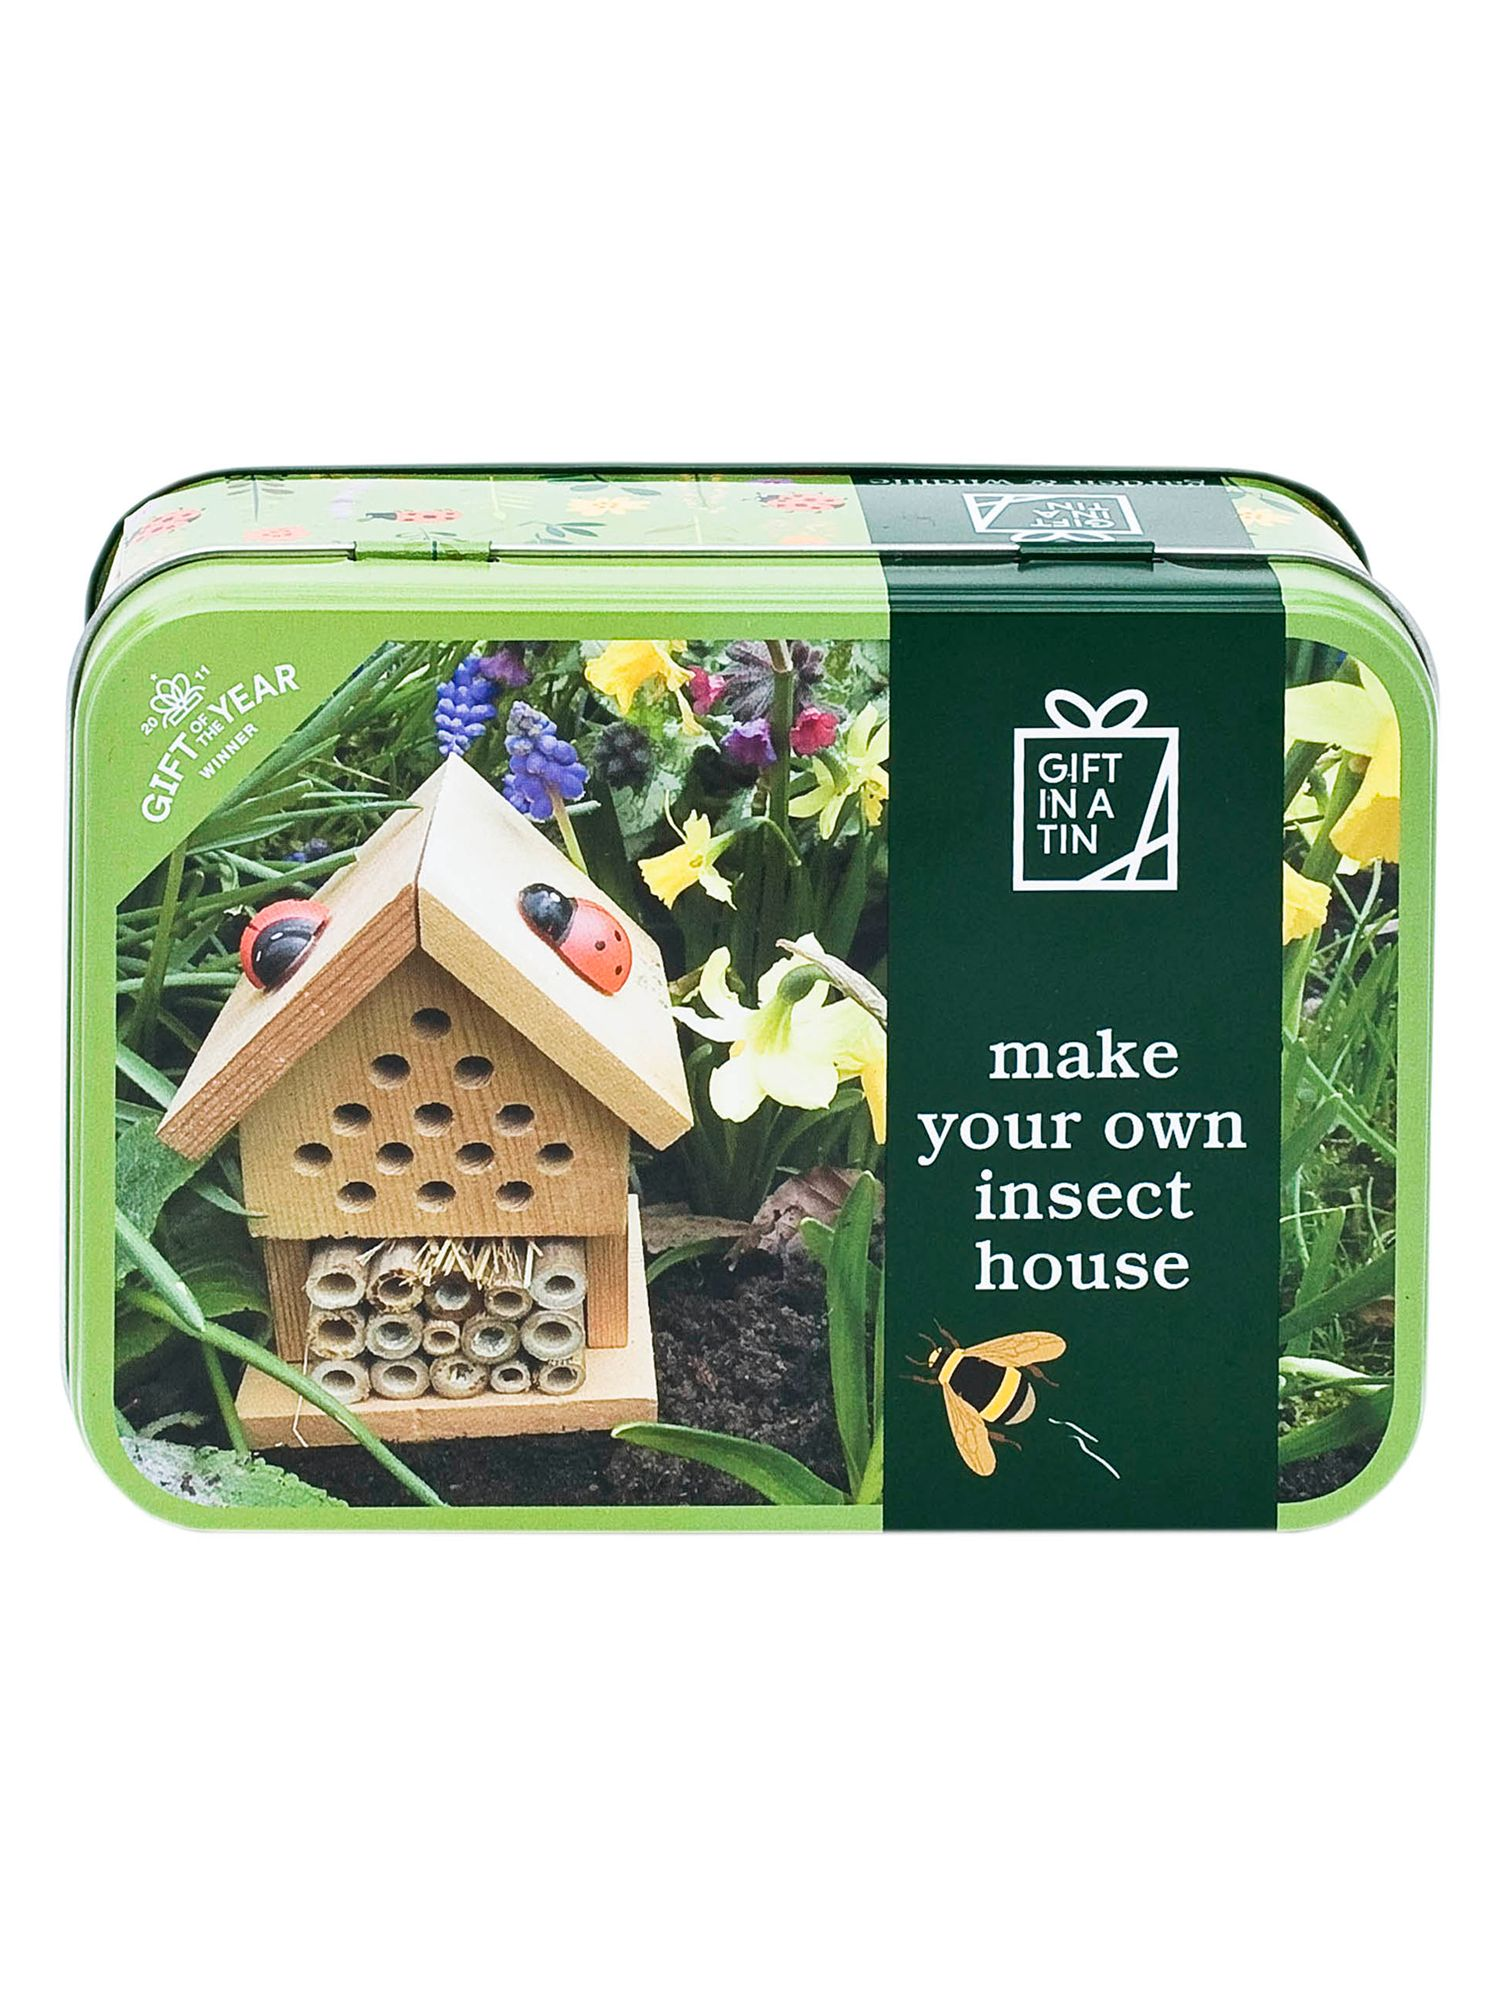 Apples To Pears Apples to Pears Gift In a Tin Make Your Own Insect House Craft Kit